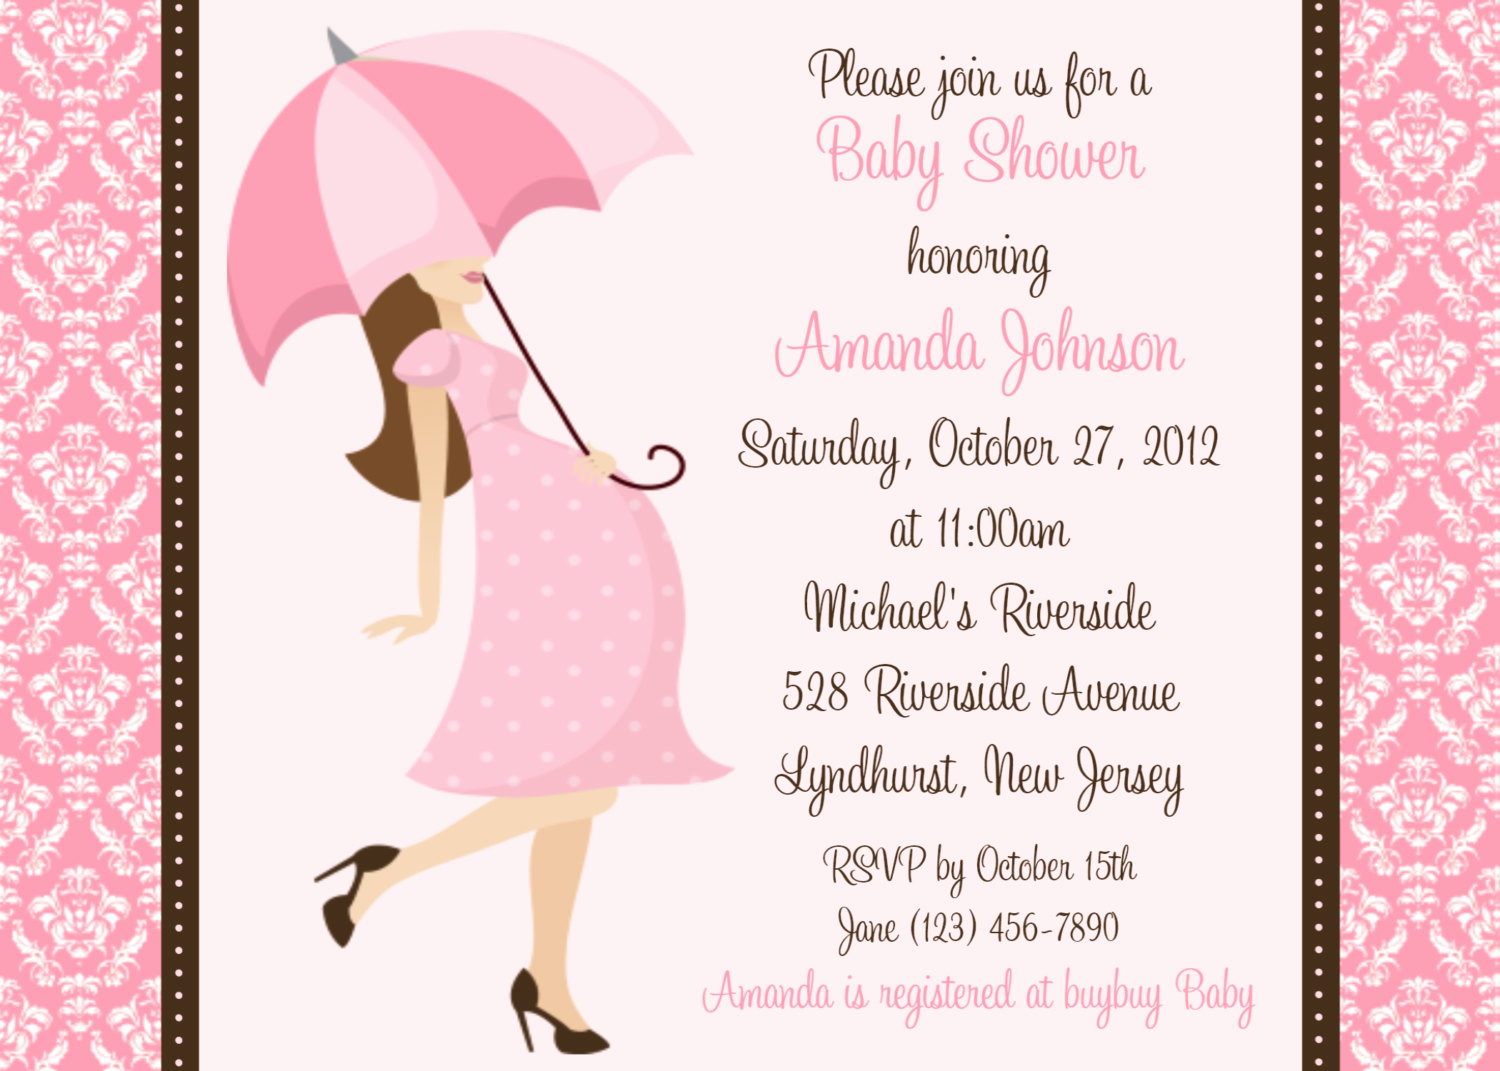 Baby Shower Invitation Pics New Damask Baby Shower Girl Invitation Personalized Custom Girl